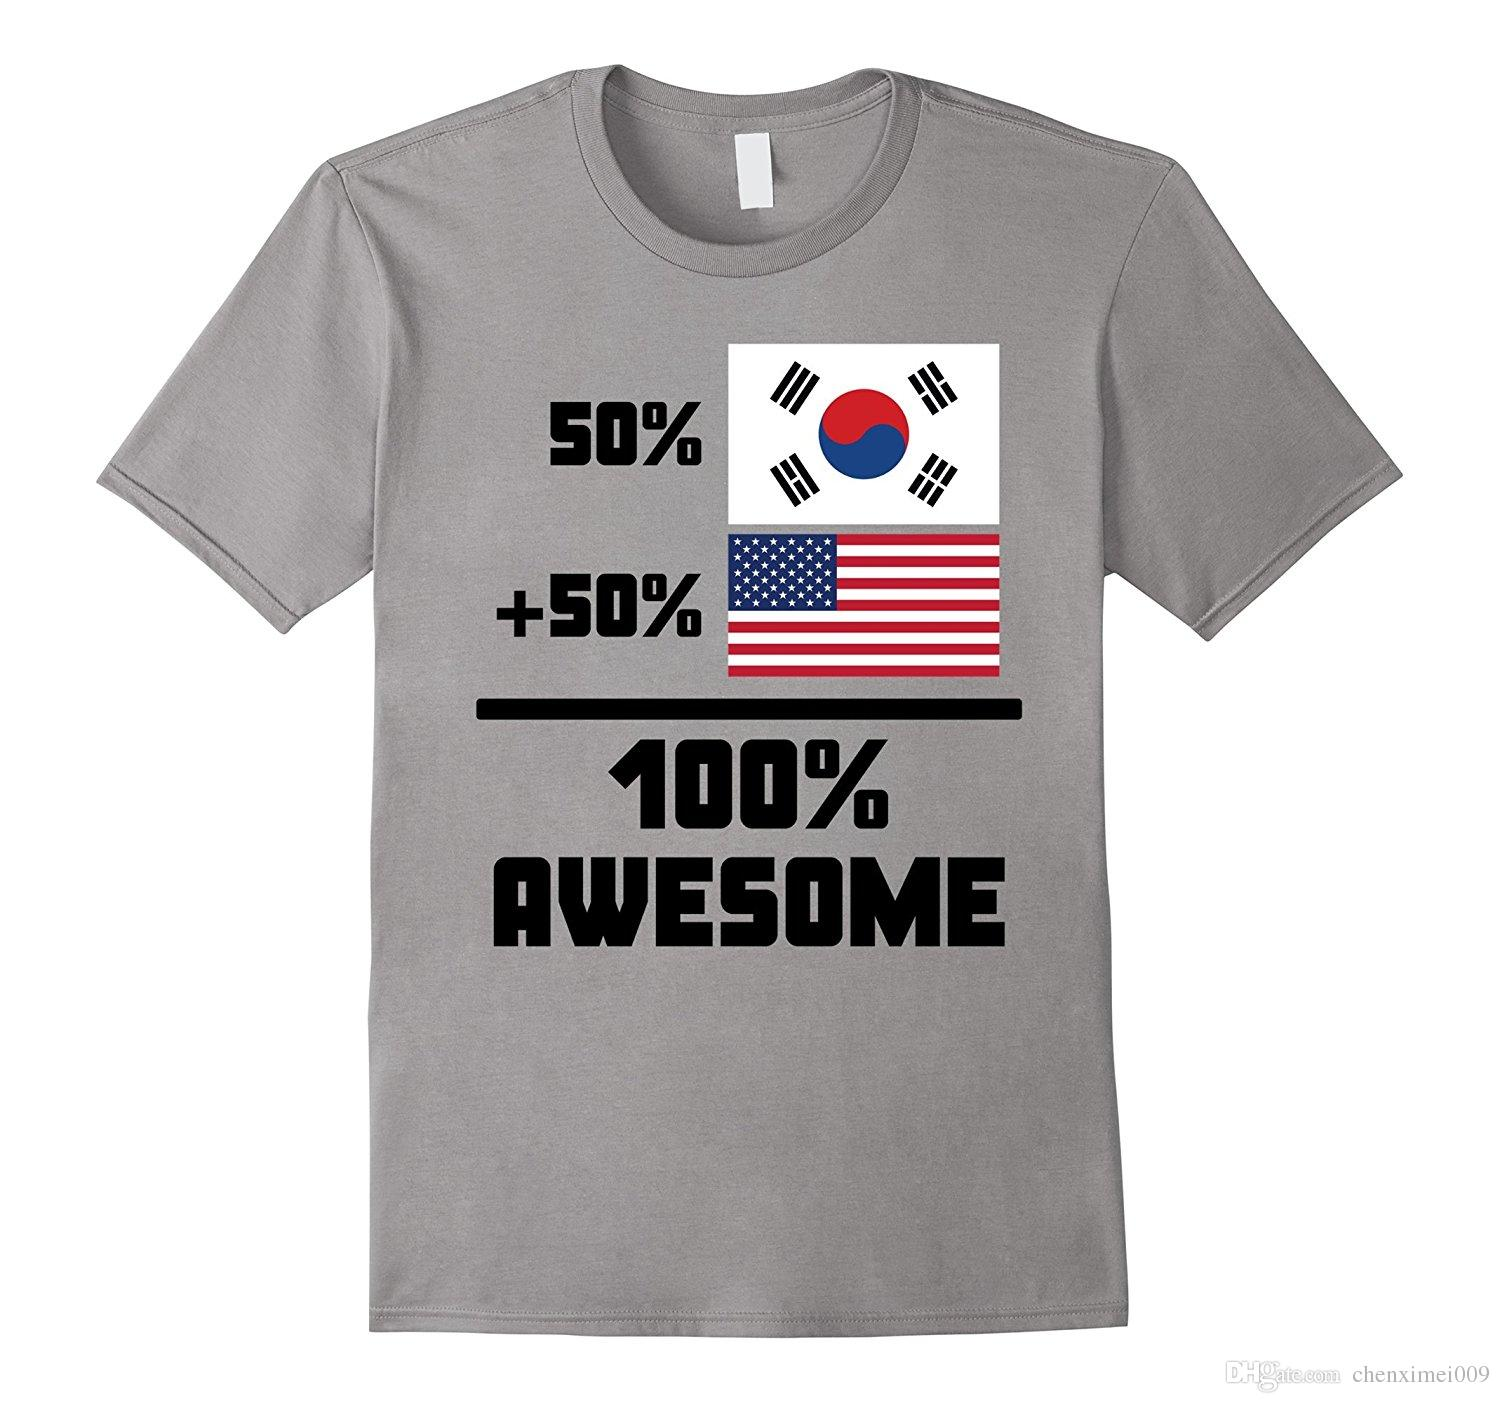 57102df5a 50 South Korean 50 American 100 Awesome Funny Flag Shirt T Shirts In A Day Awesome  Tee Shirt Designs From Chenximei009, $14.21| DHgate.Com